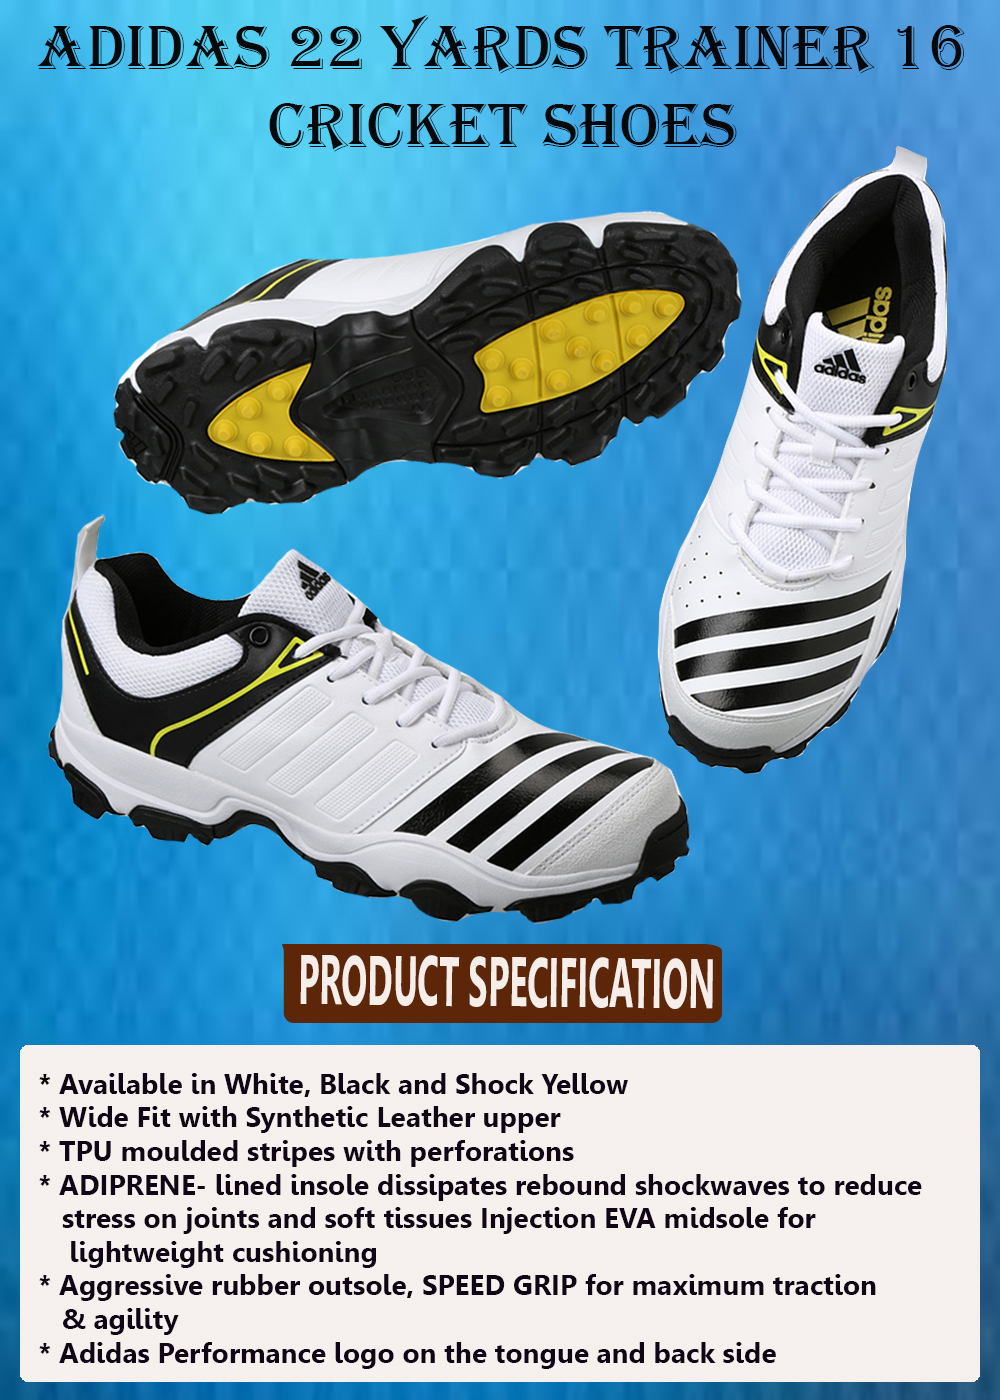 ADIDAS 22 YARDS TRAINER 16 CRICKET SHOES_2